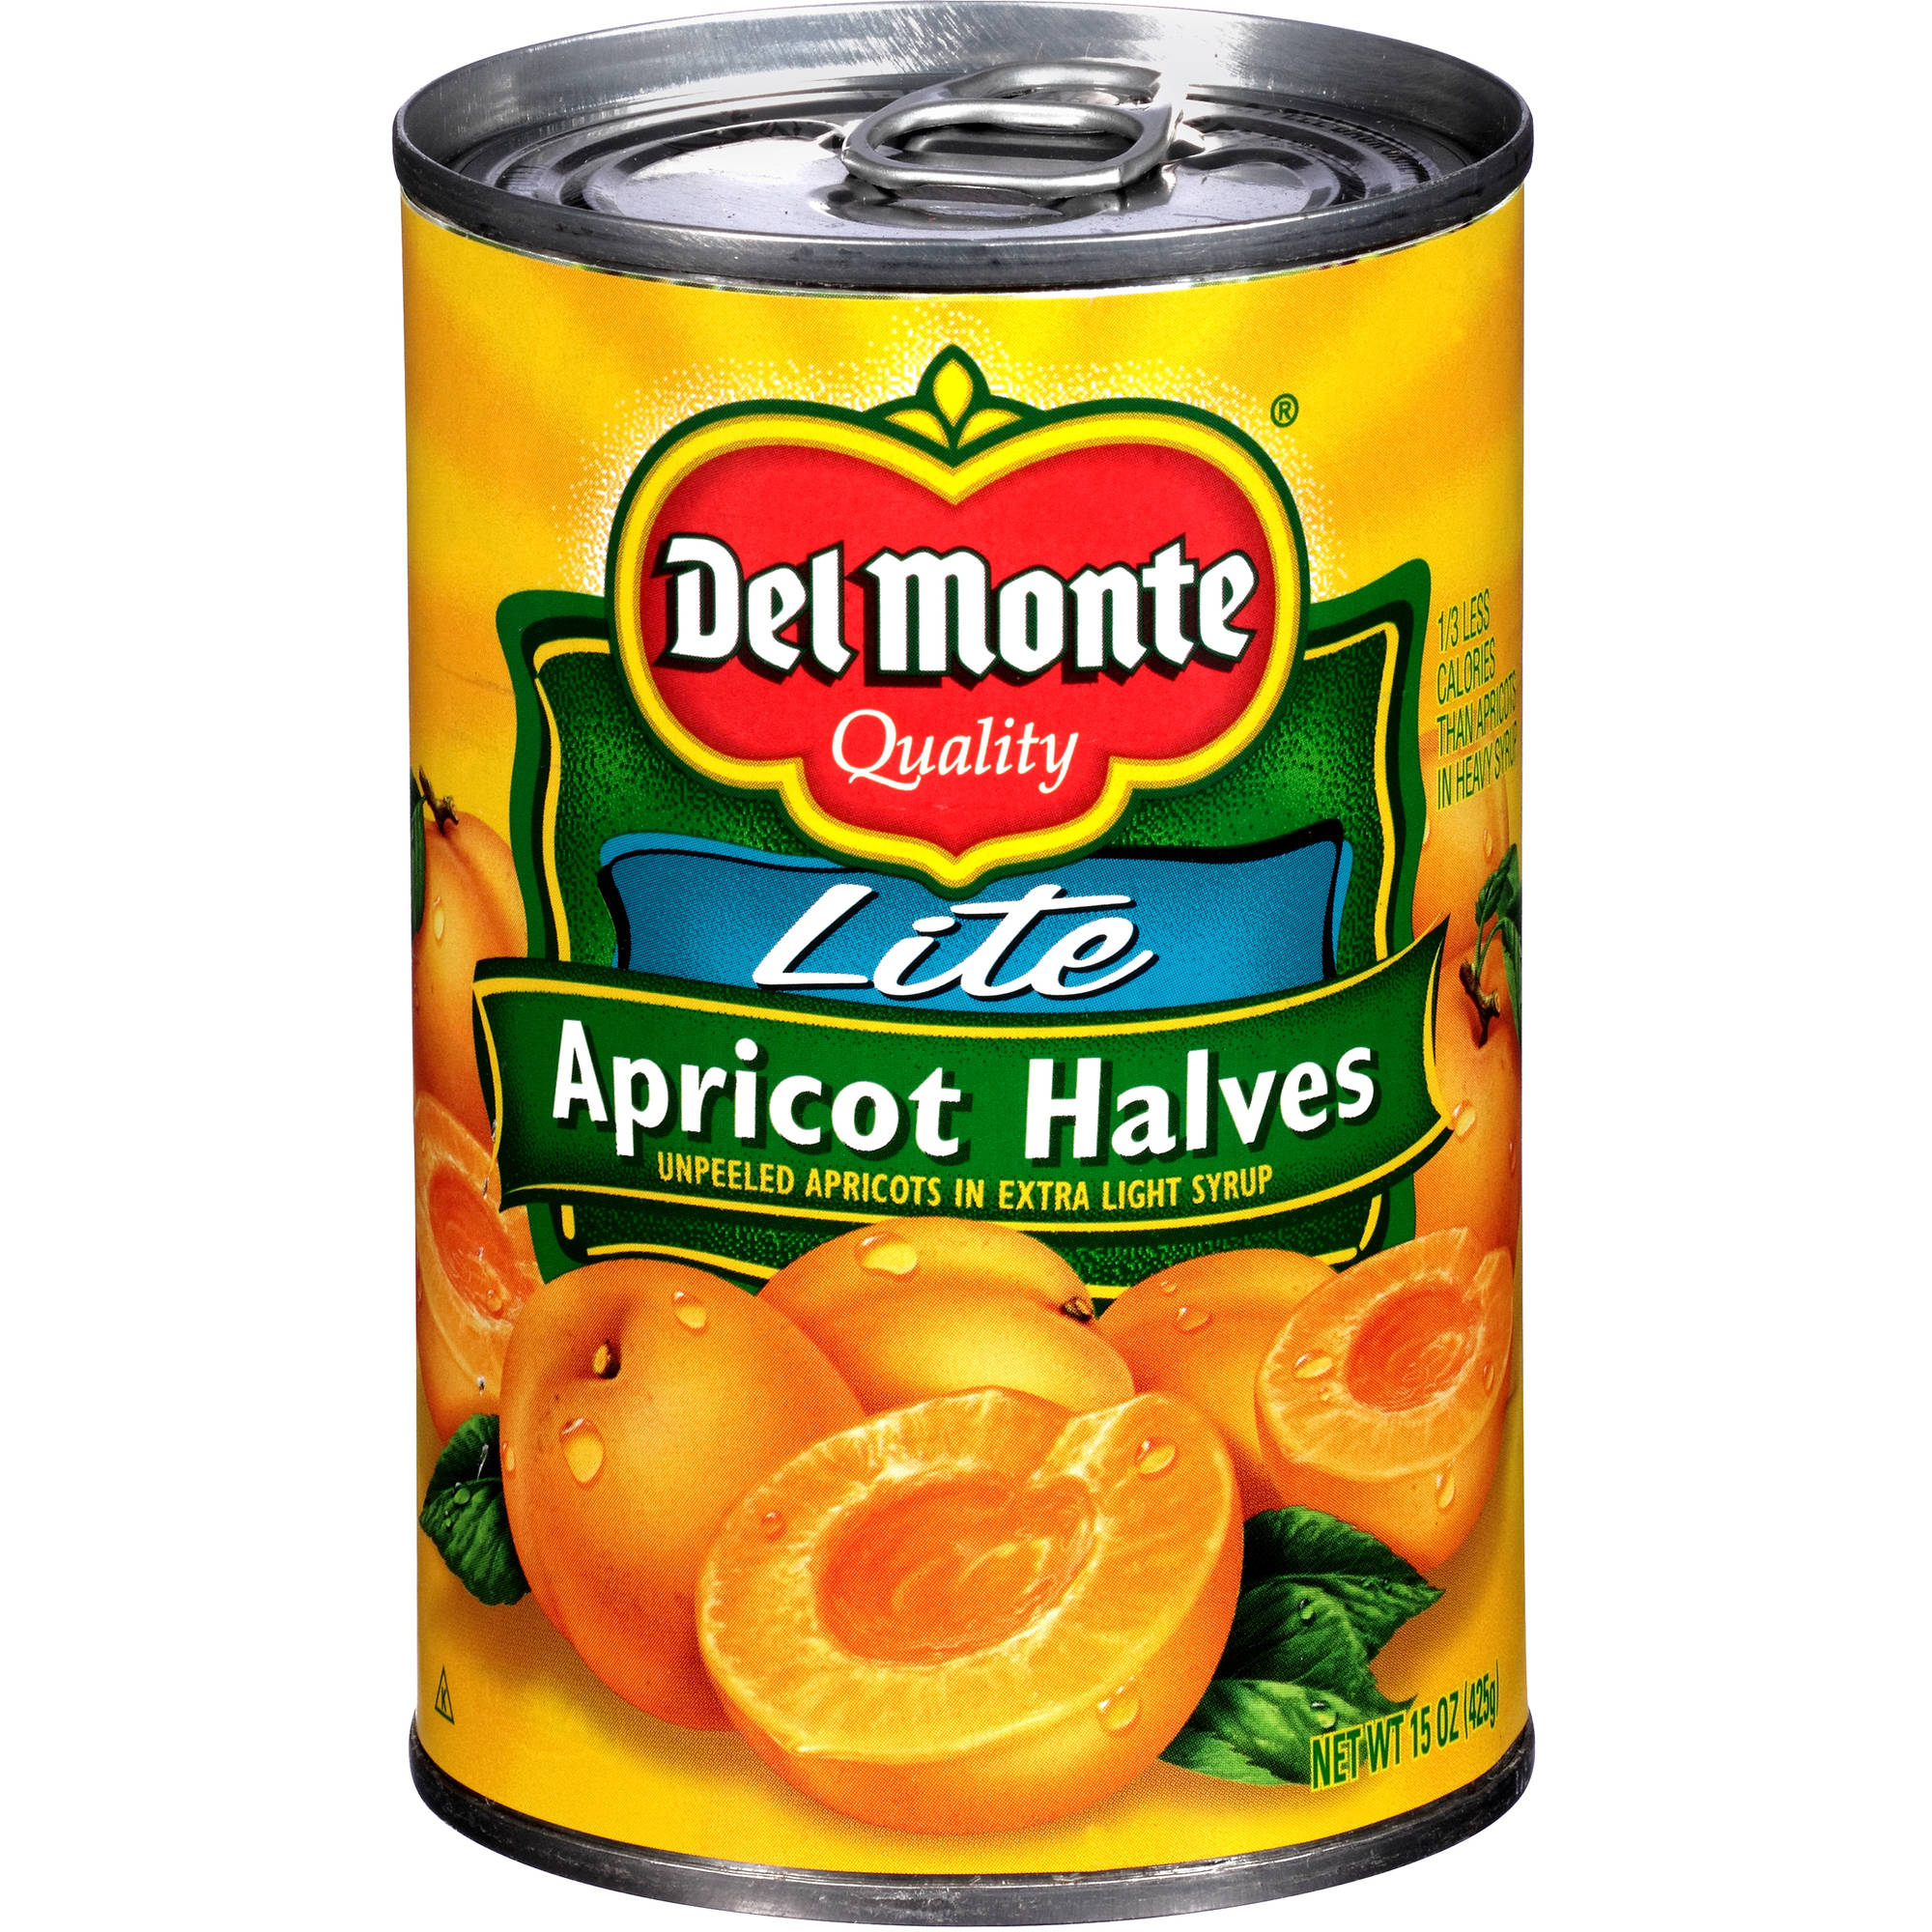 canned apricots havles